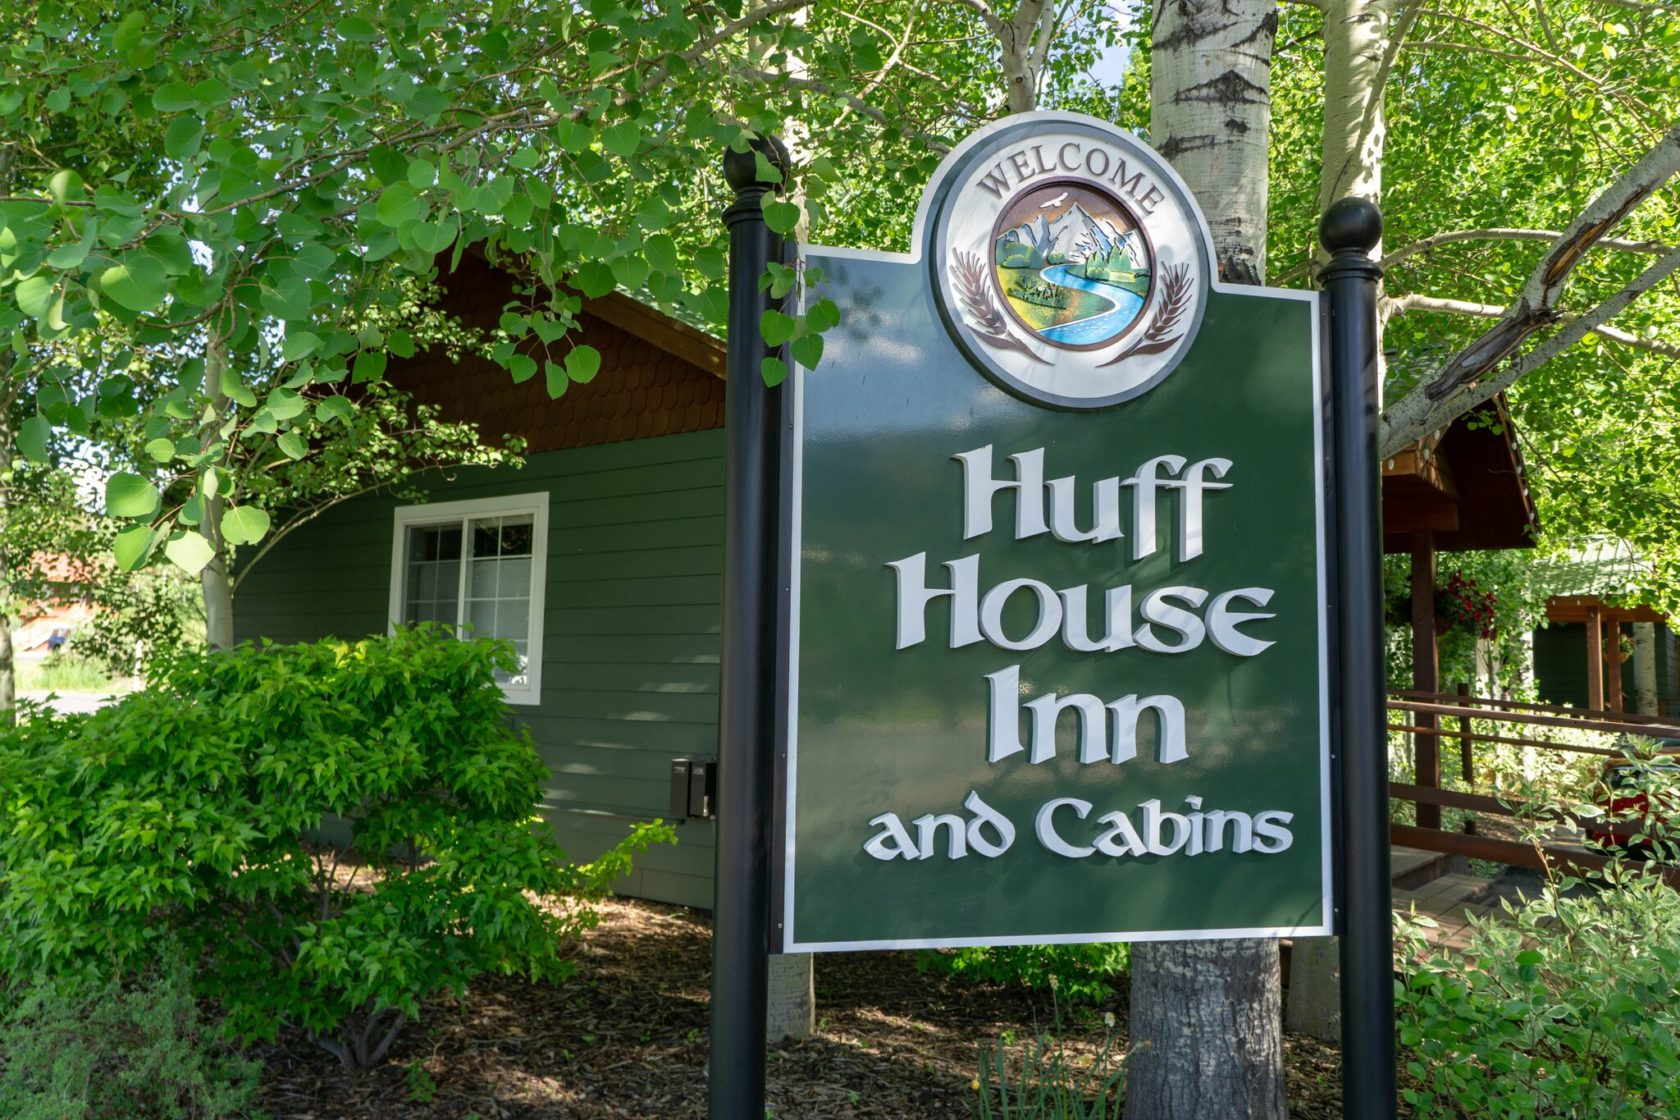 Huff House Huff House Inn And Cabins Best Of Jackson Hole Local Guide To